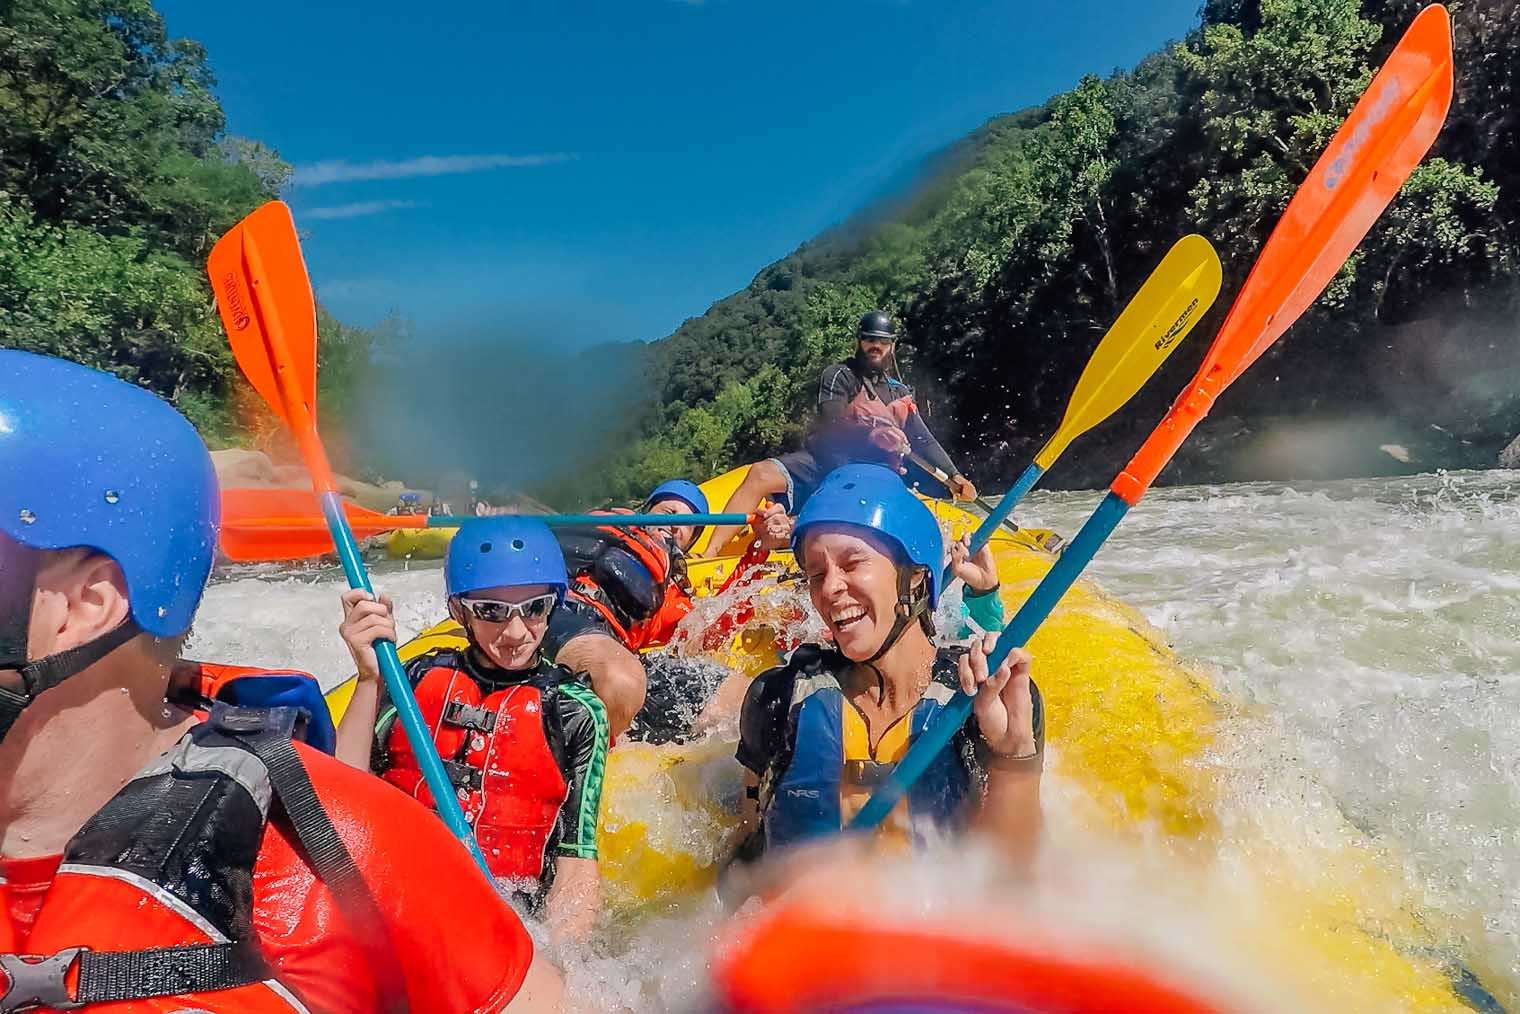 White Water Rafting on the New River in West Virginia